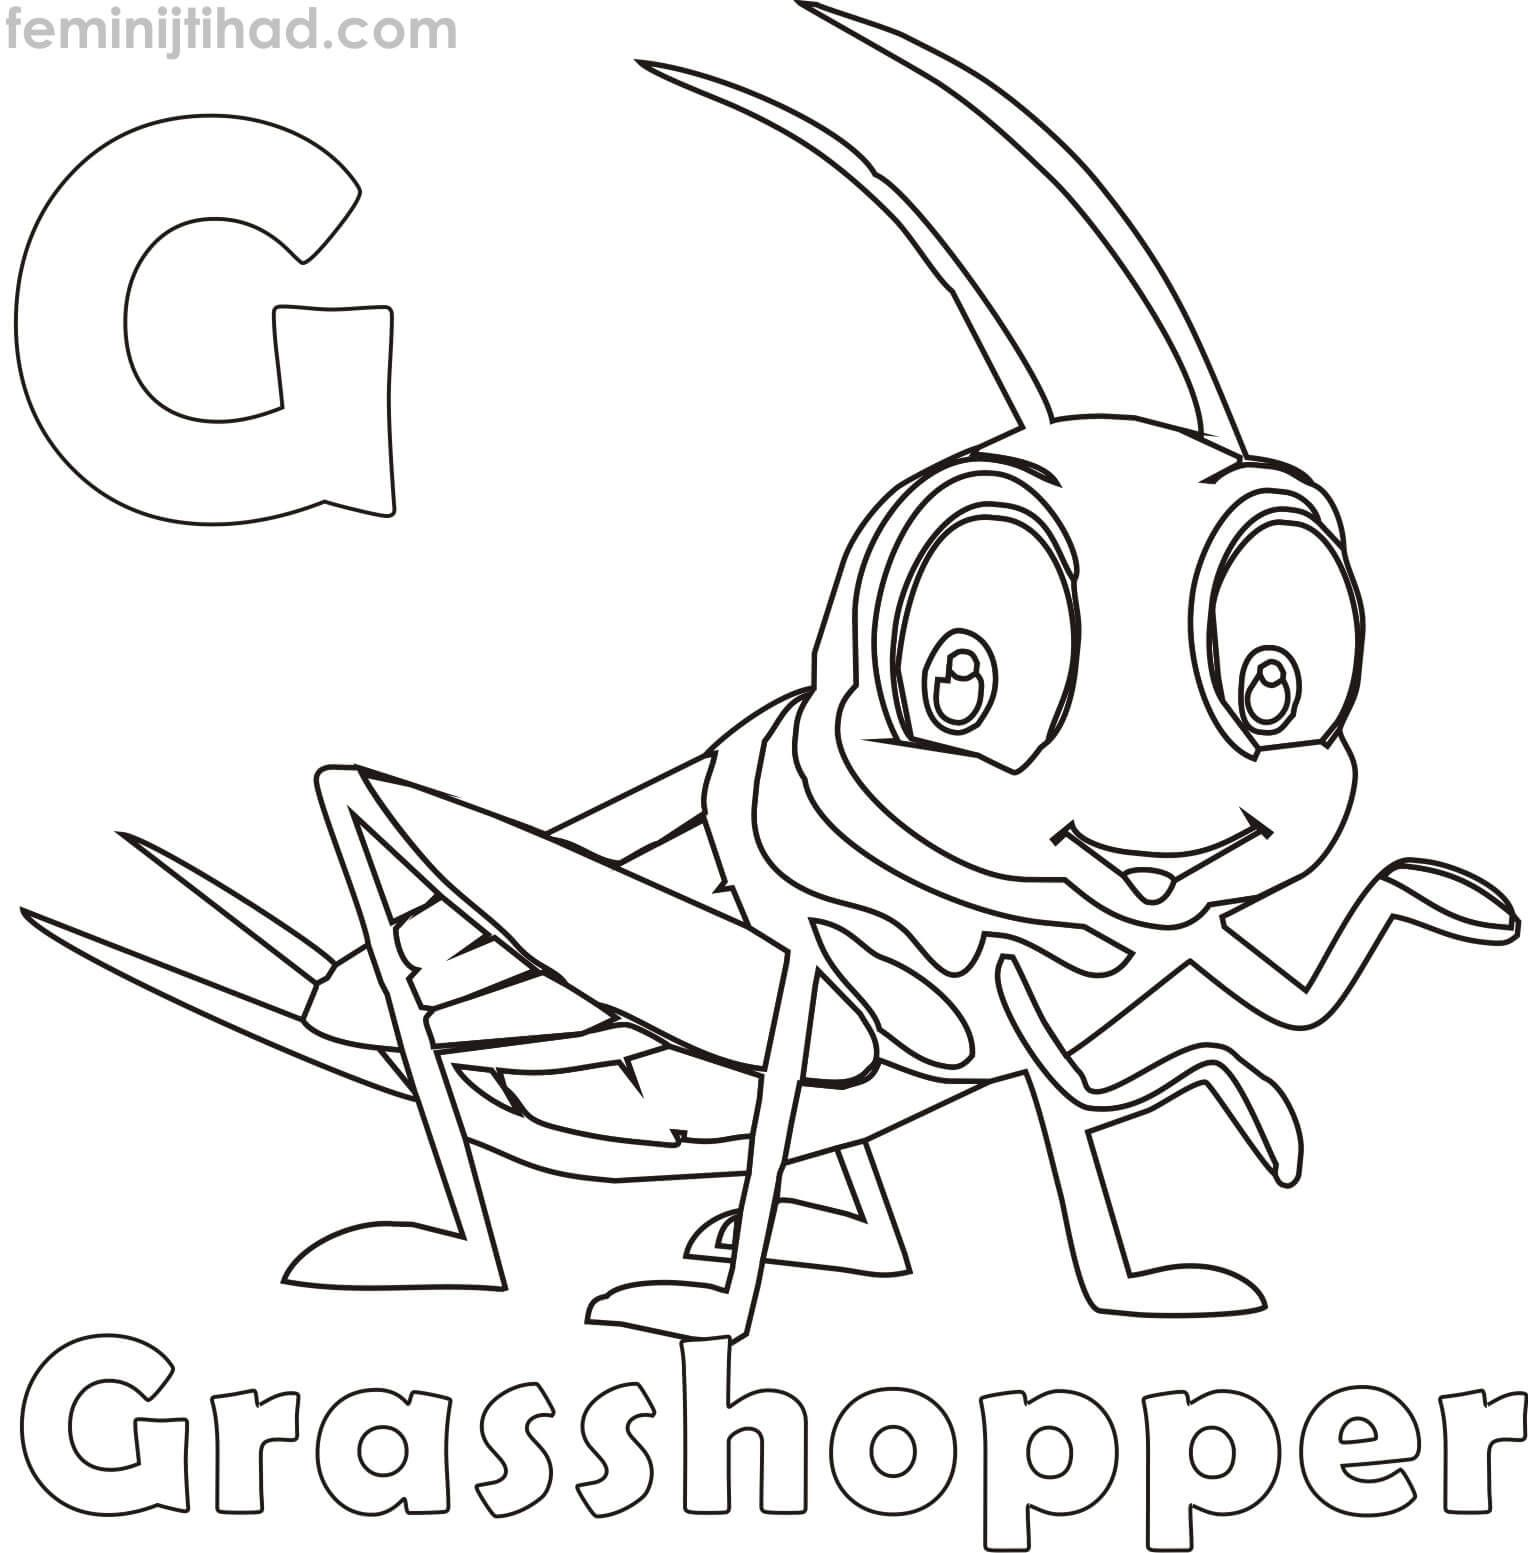 G For Grasshopper Coloring Pages For Kids Animal Coloring Pages Coloring Pages Coloring Pages For Kids